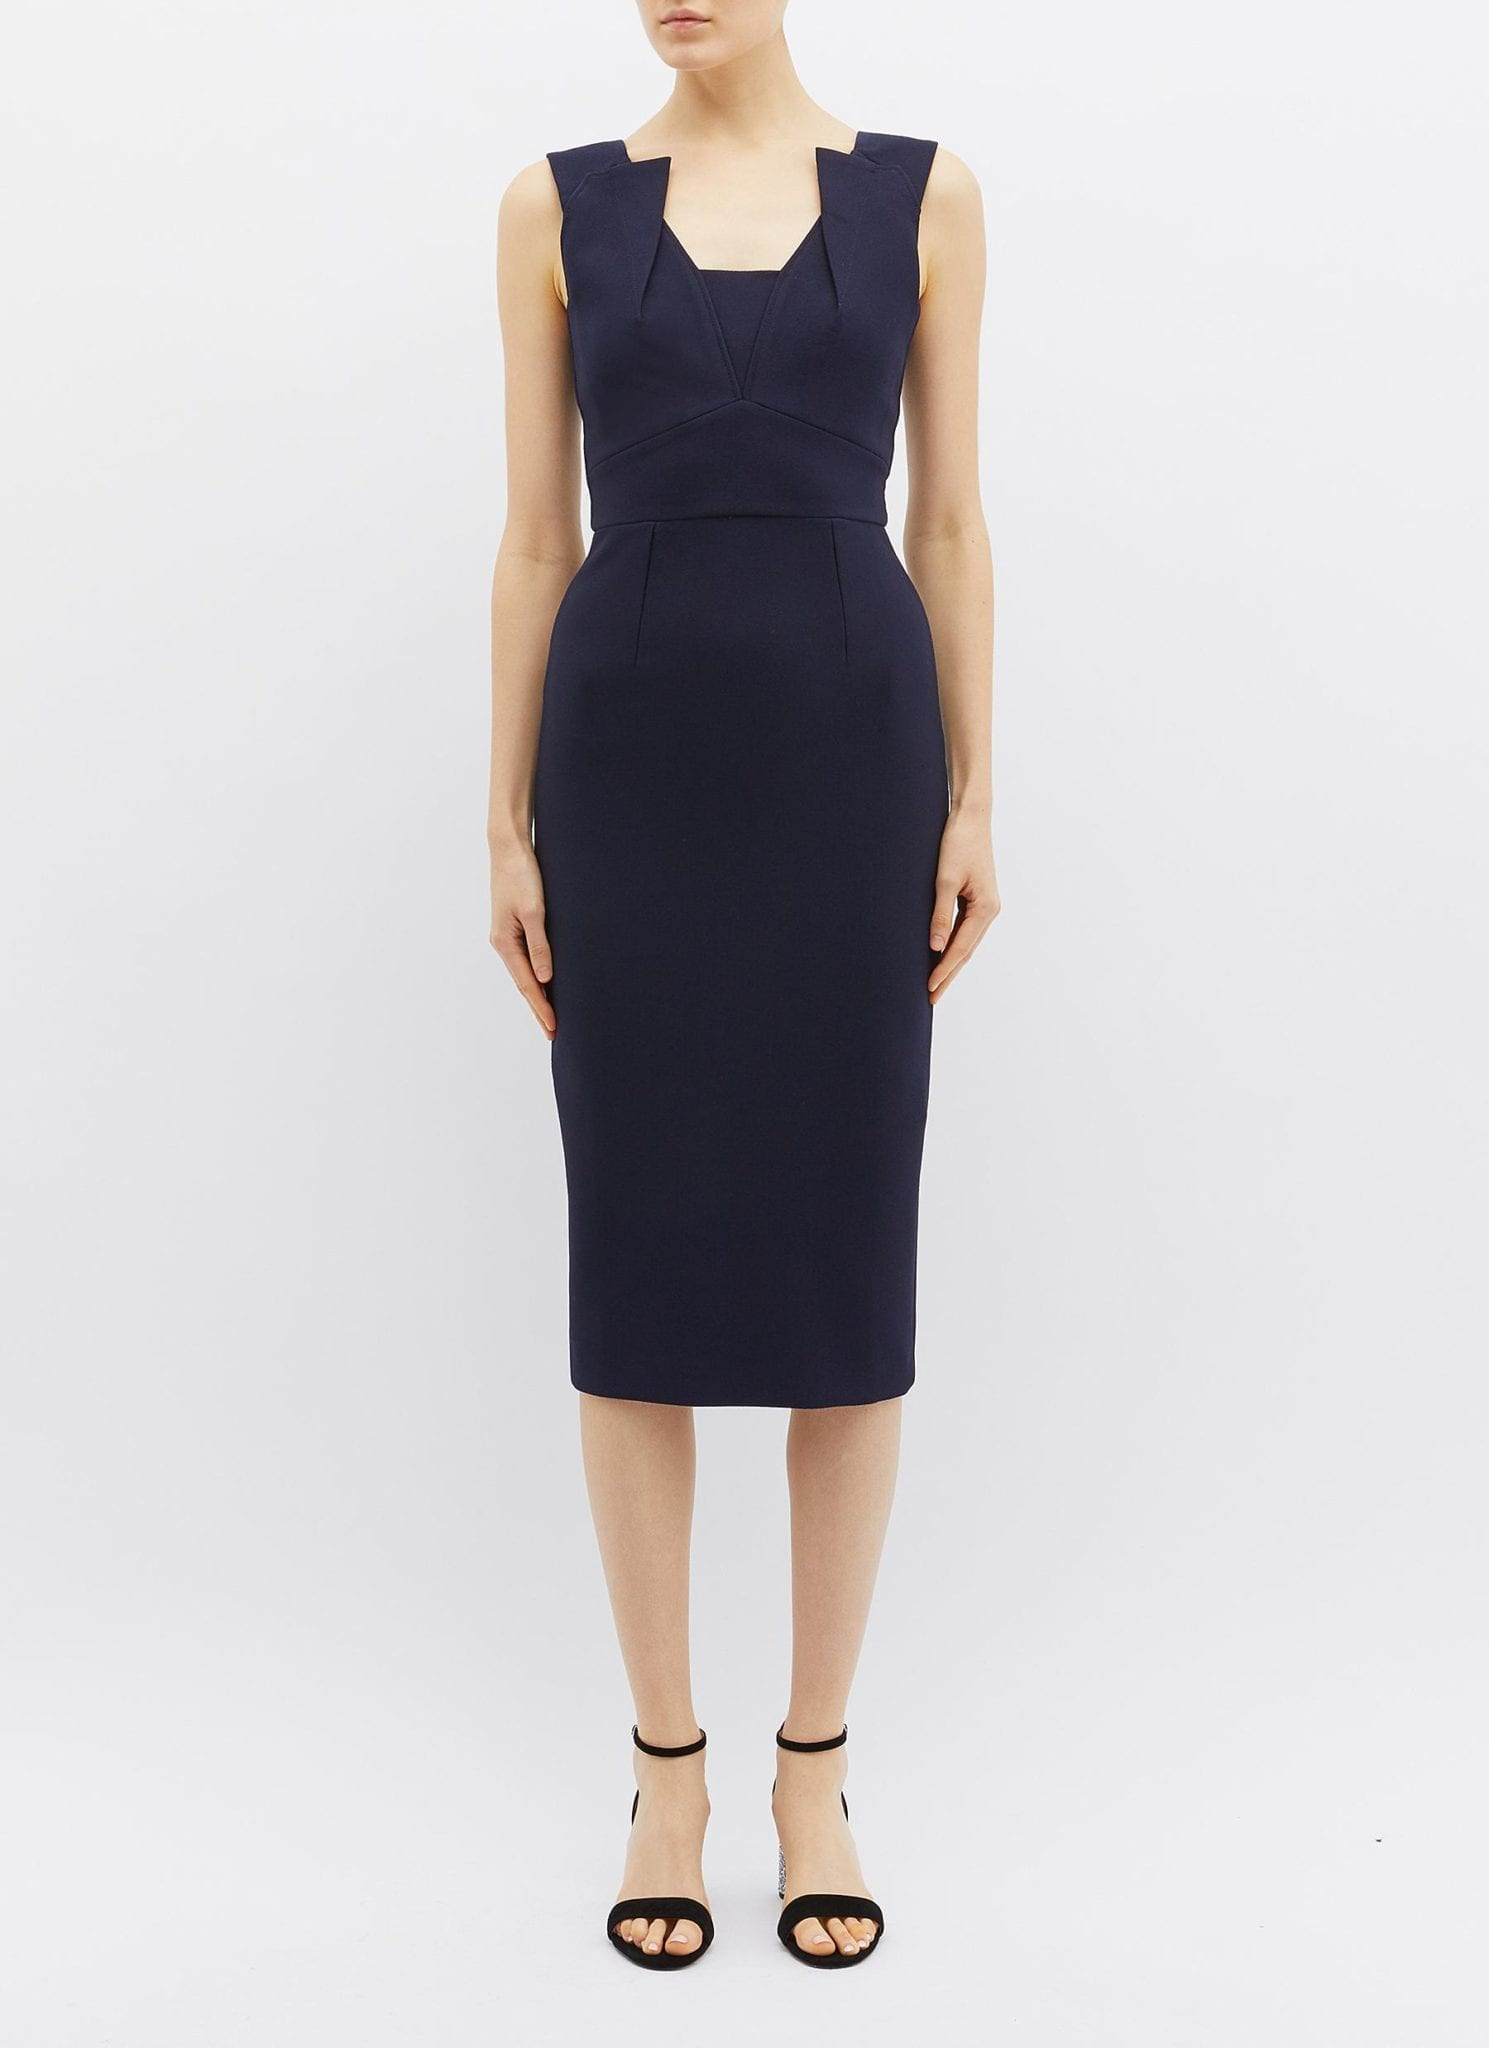 ROLAND MOURET 'coleby' Panelled Crepe Navy Dress